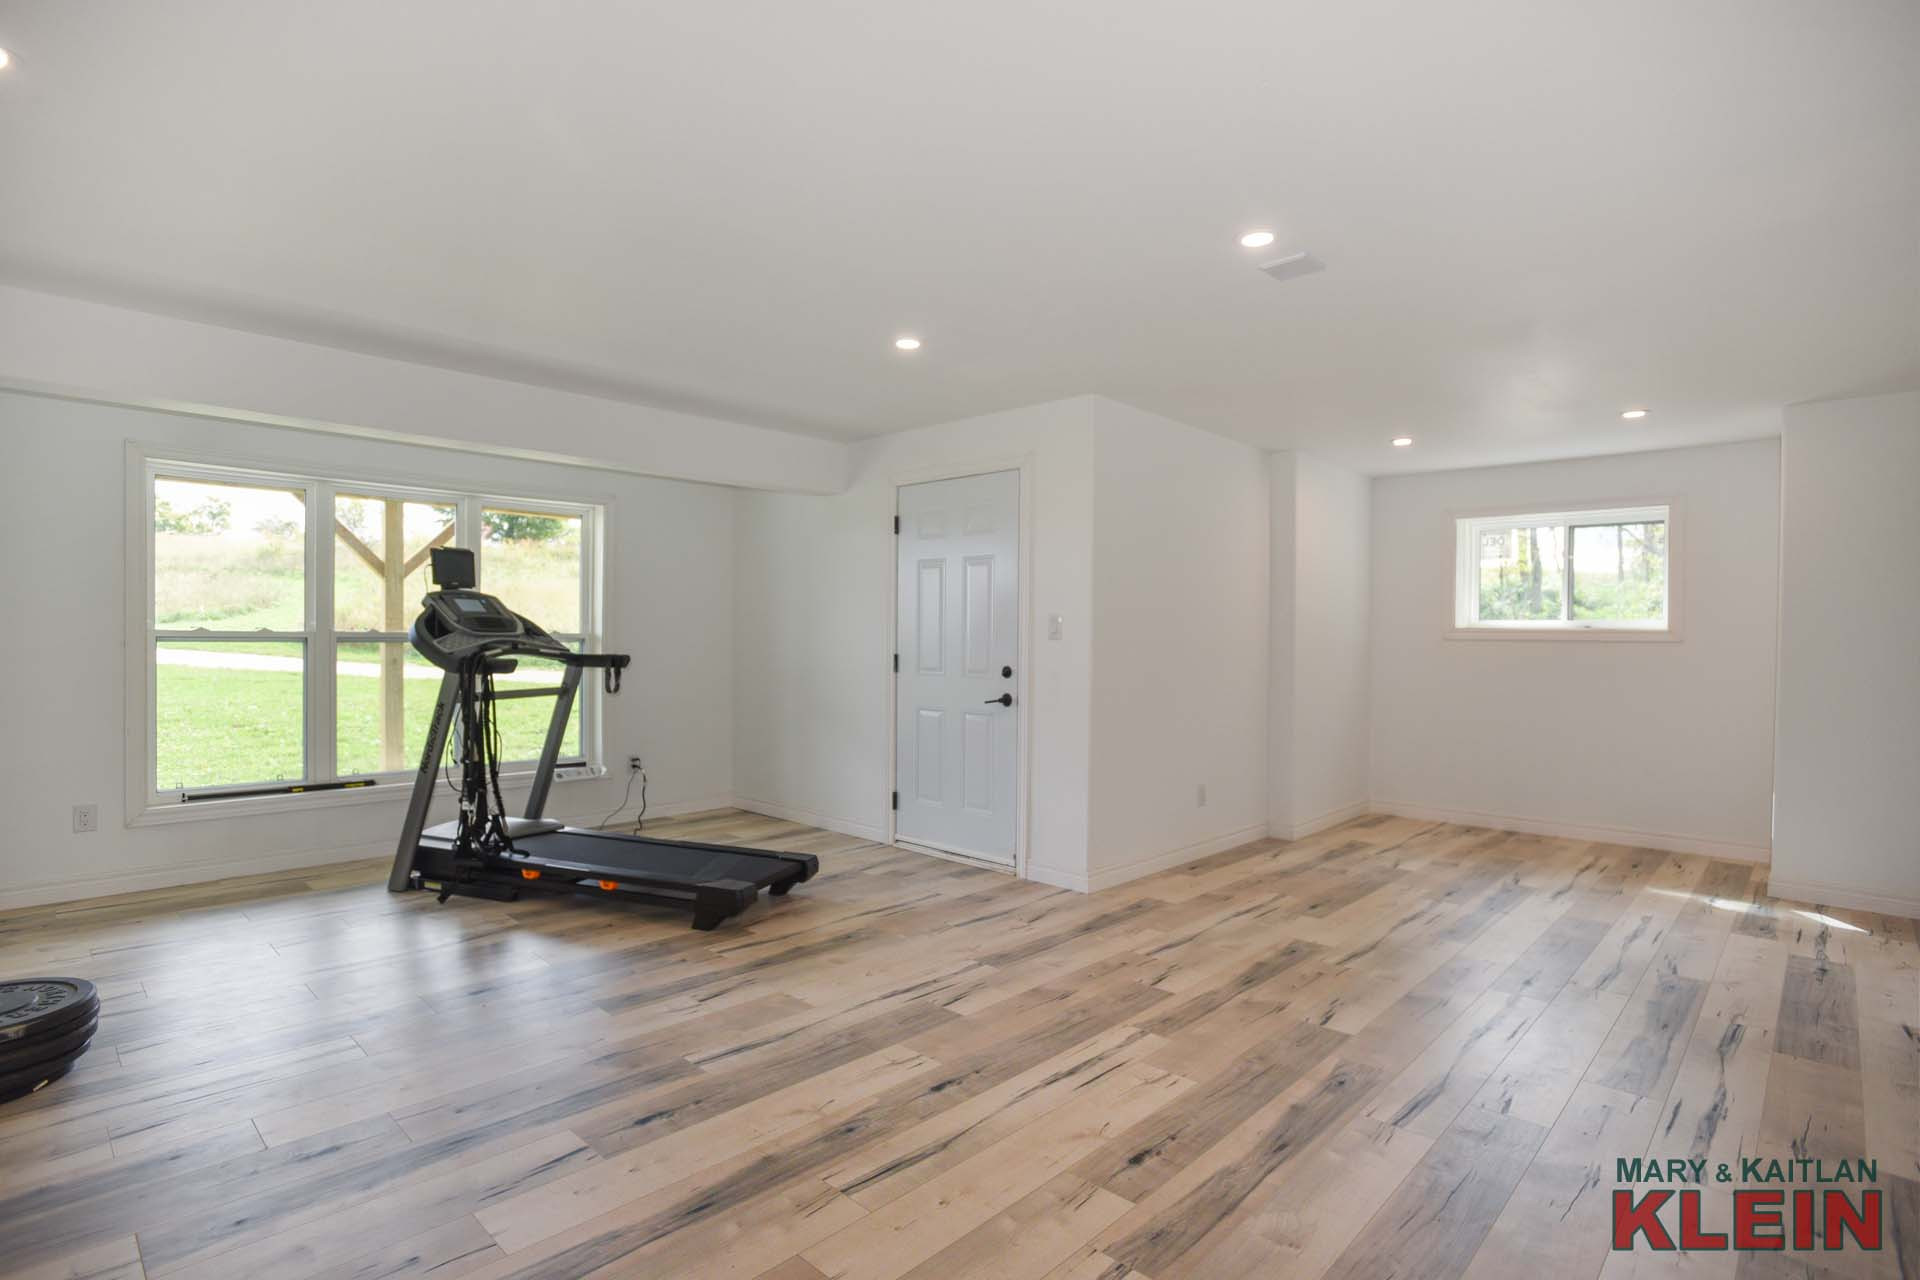 Forest Accents Hardwood Flooring Reviews Of Mulmur Brand New Bungalow On 24 58 Acres for Sale Klein for Barn Doors Lead Into Another Finished Room Currently An Exercise area